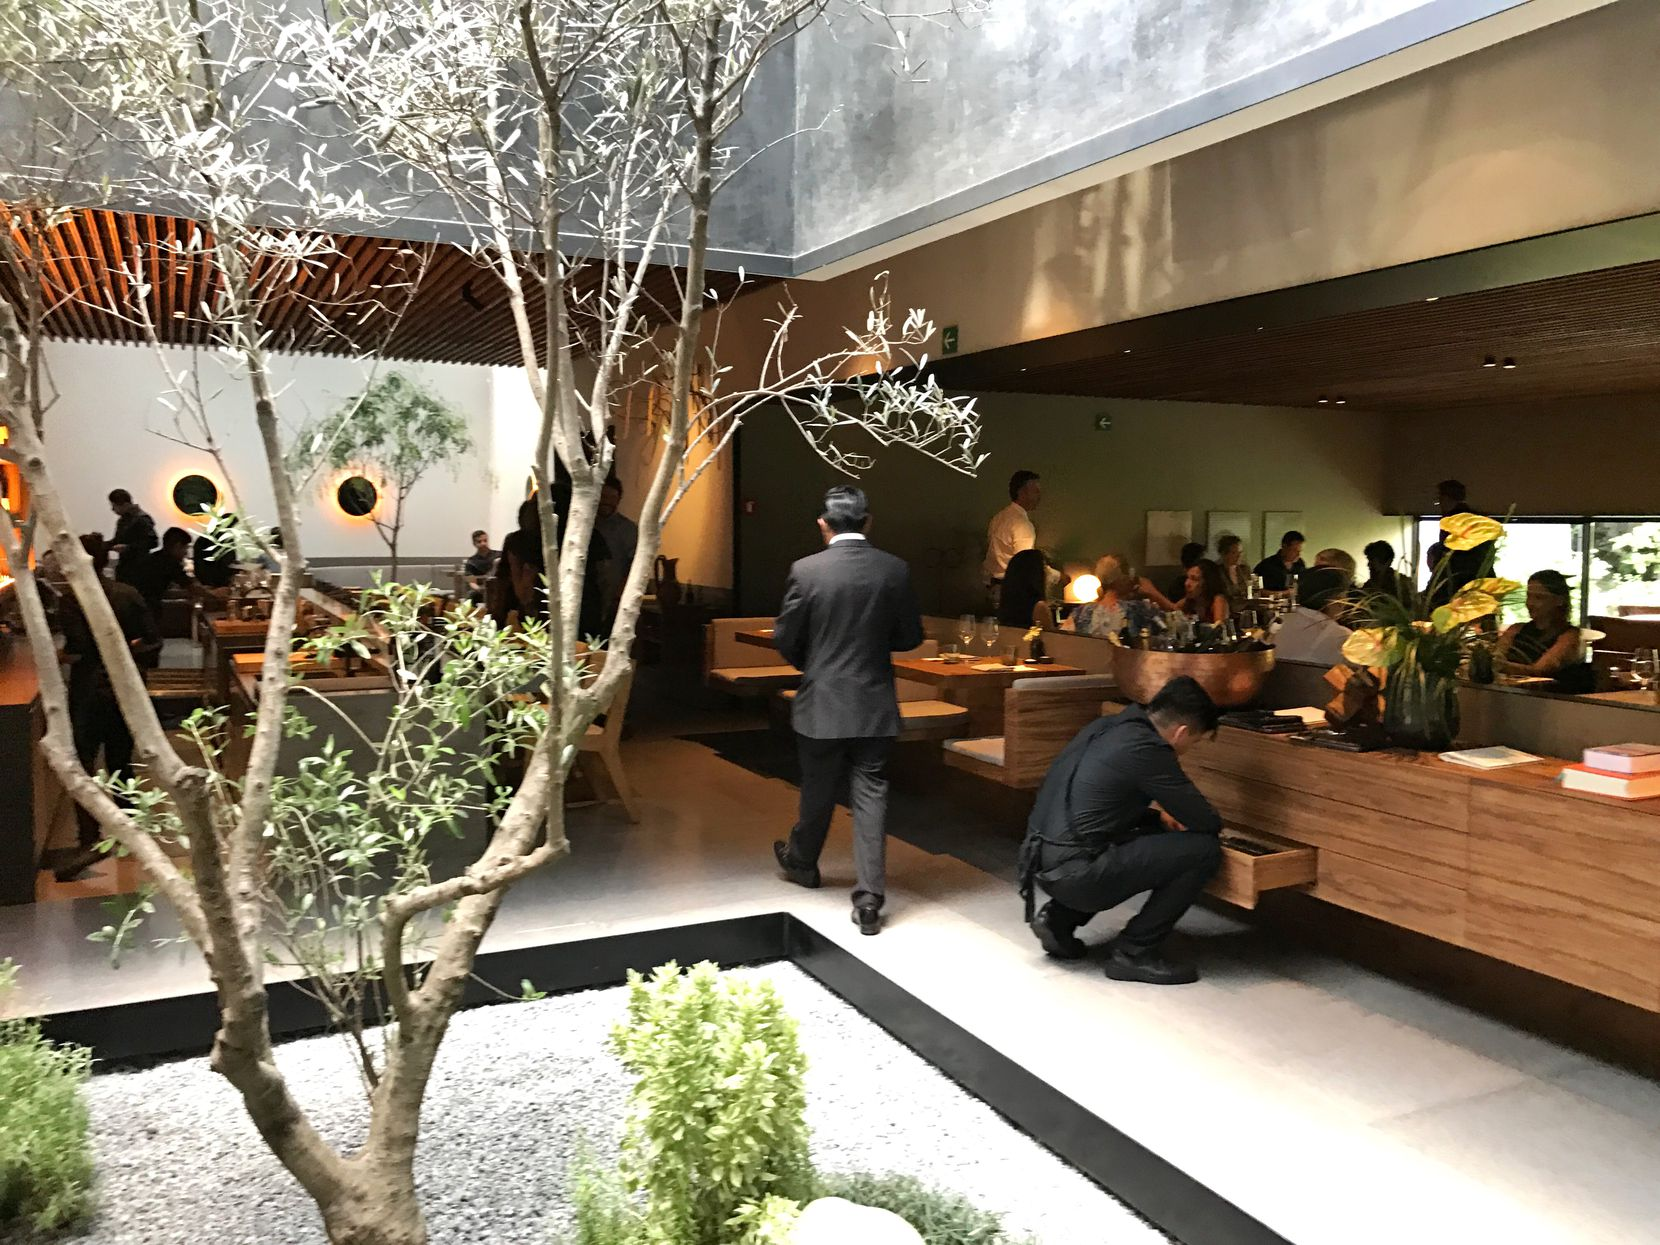 The new Pujol in Mexico City: The dining room is on the right, the omakase taco bar on the left, behind the tree. (Leslie Brenner/Staff)